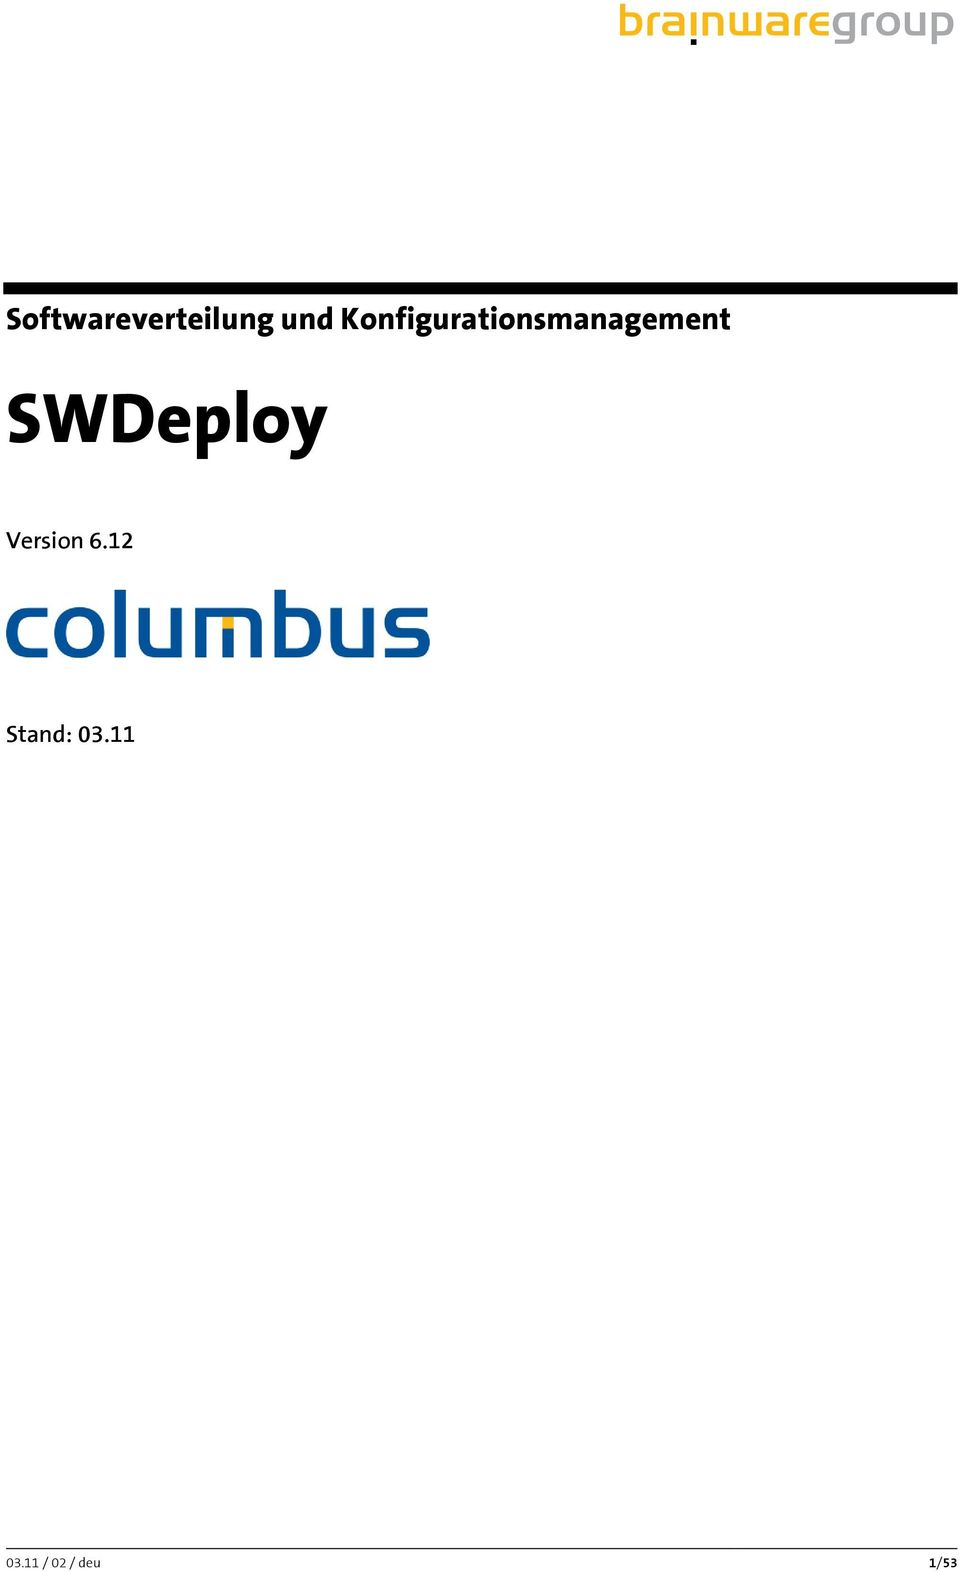 SWDeploy Version 6.